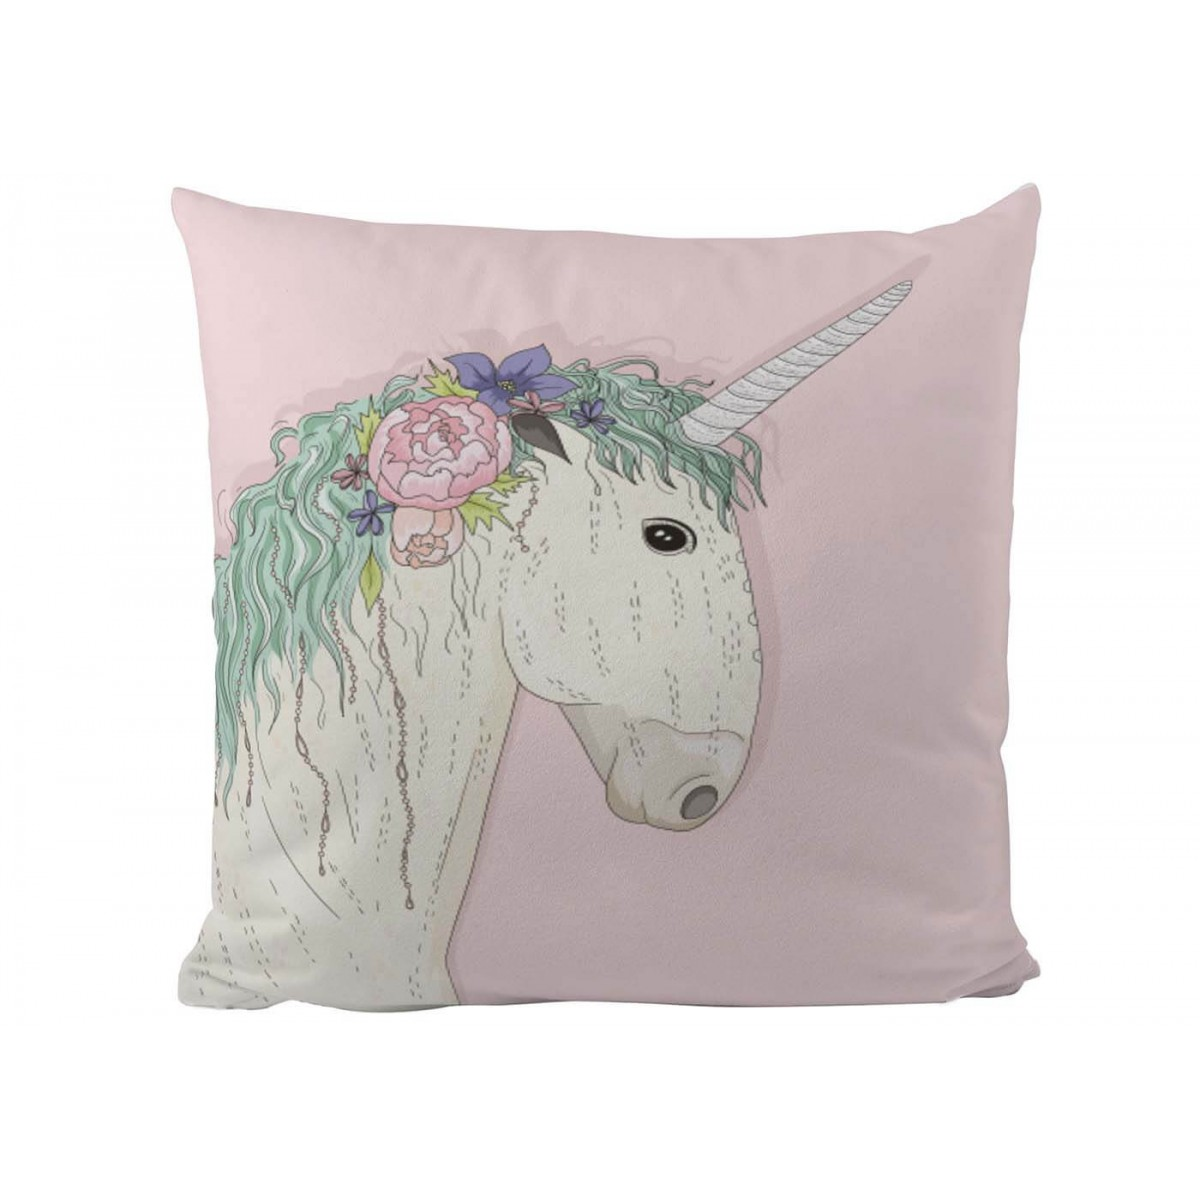 Coussin rose th me licorne pour chambre fille butter kings - Coussin chambre fille ...